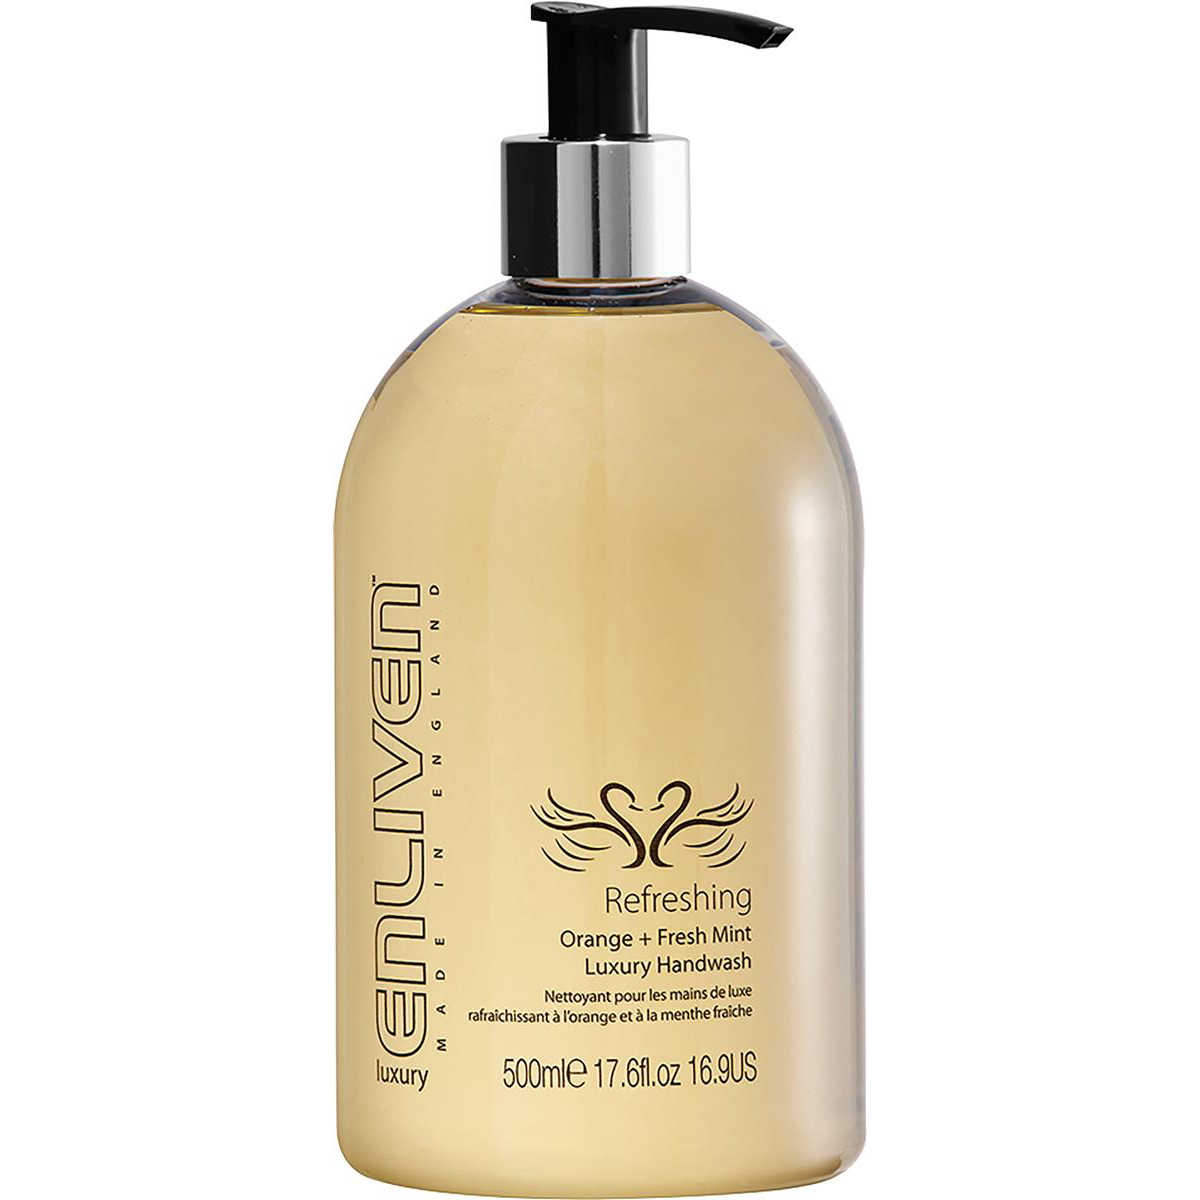 Enliven Luxury Handwash Refreshing 500ml Ref 502329